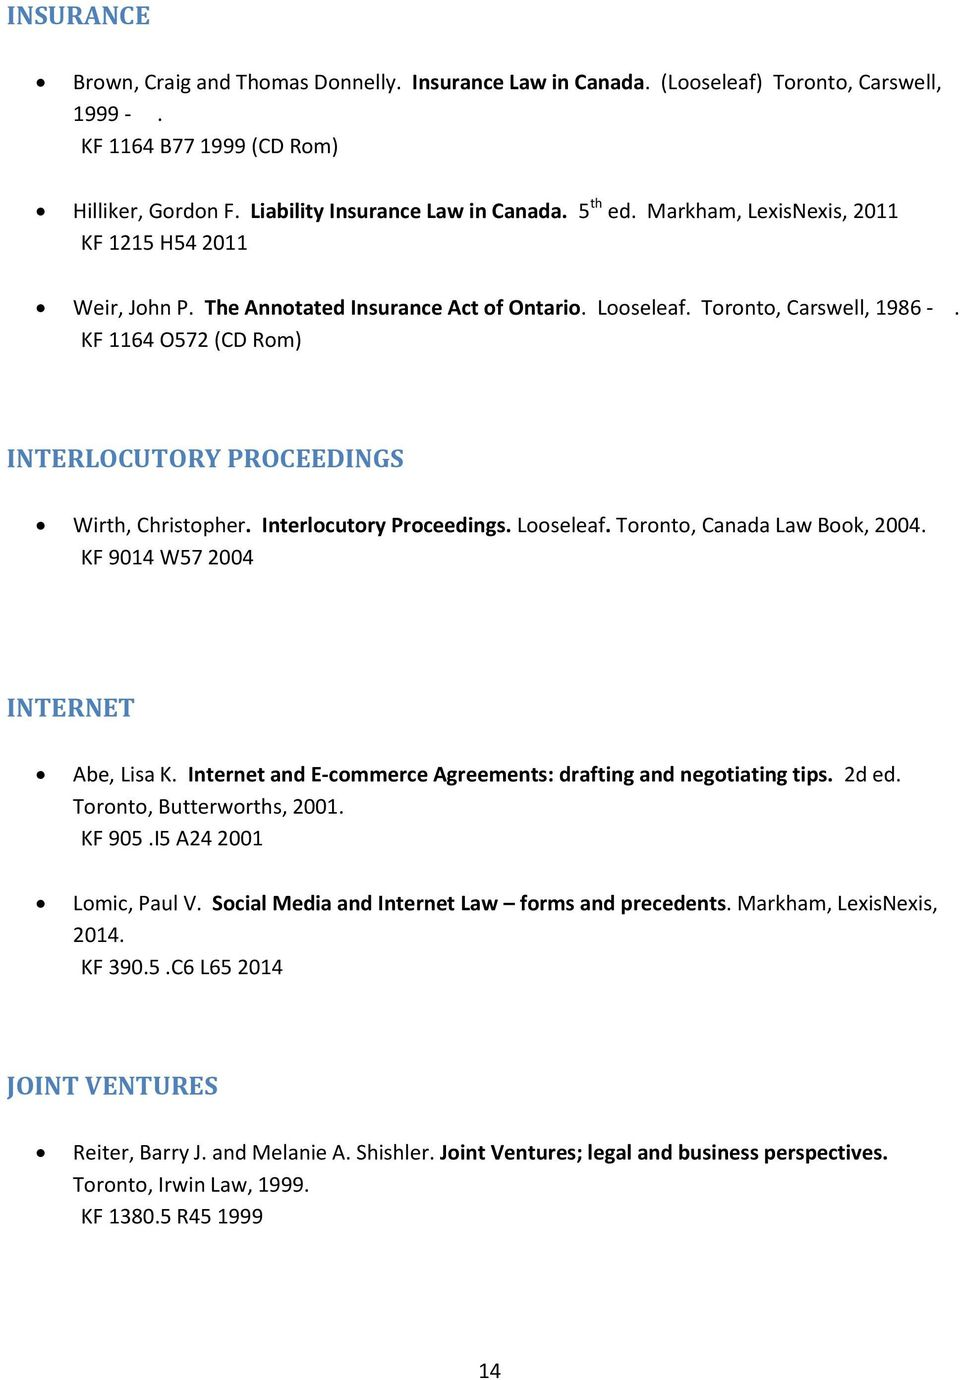 KF 1164 O572 (CD Rom) INTERLOCUTORY PROCEEDINGS Wirth, Christopher. Interlocutory Proceedings. Looseleaf. Toronto, Canada Law Book, 2004. KF 9014 W57 2004 INTERNET Abe, Lisa K.